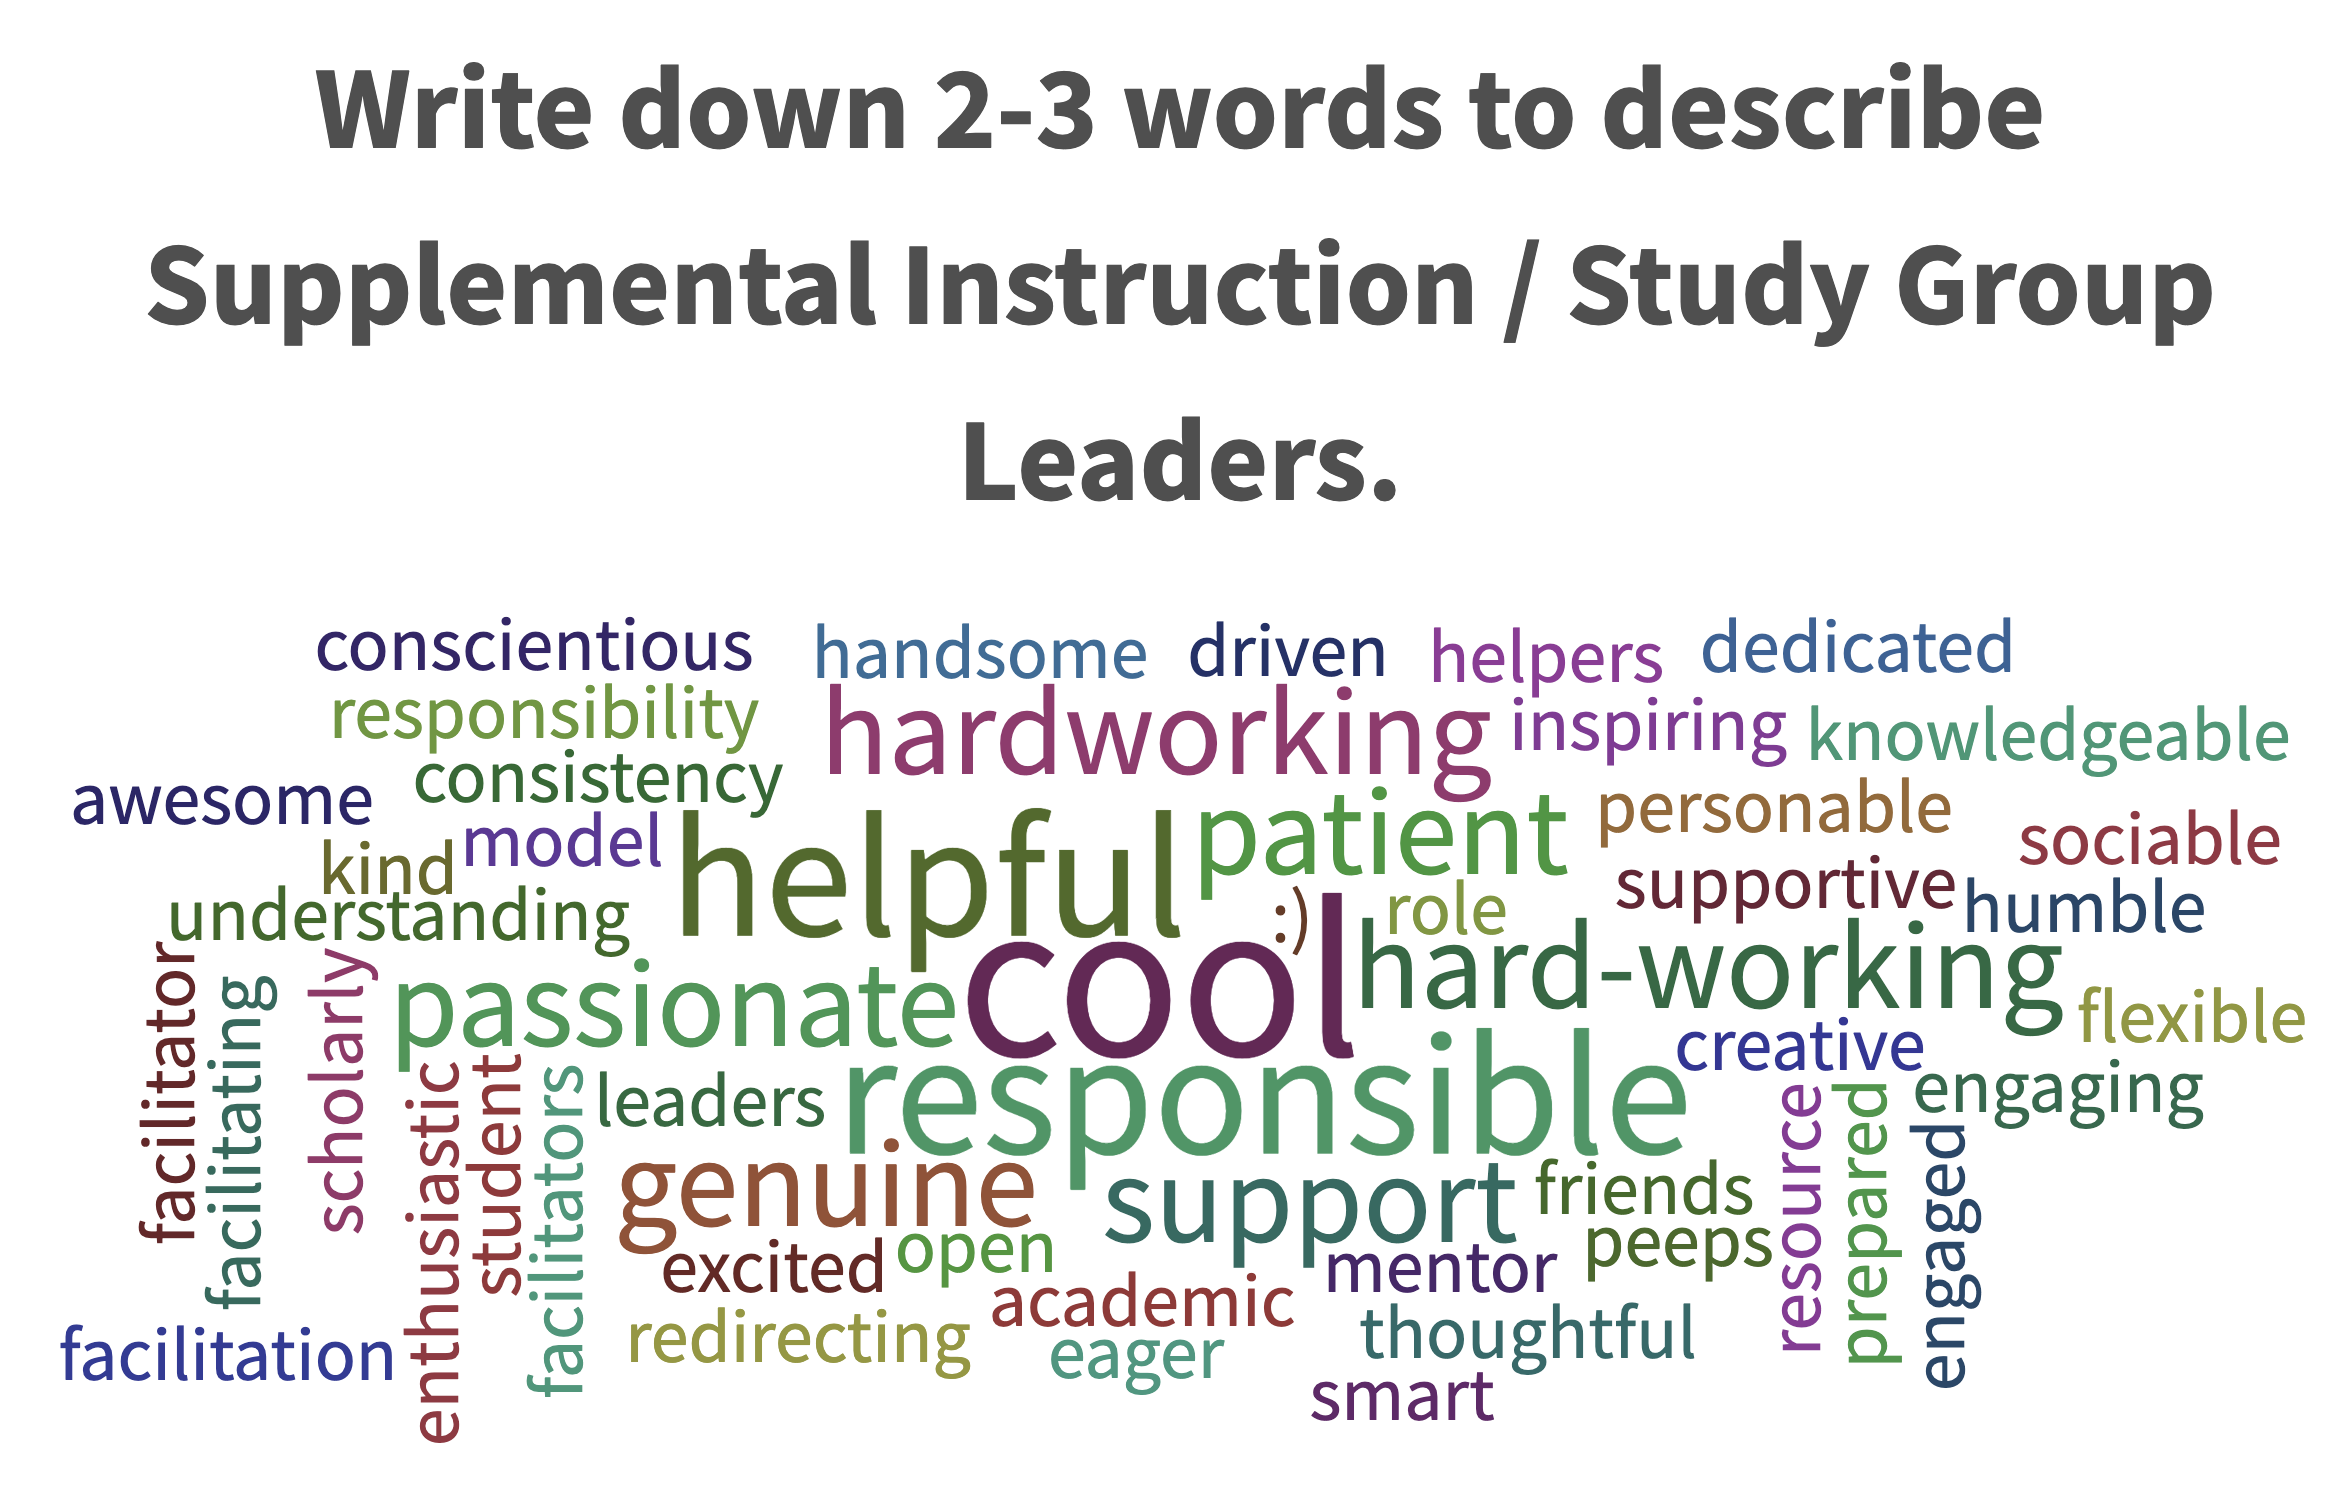 image of words used to describe supplemental instruction and study group leaders